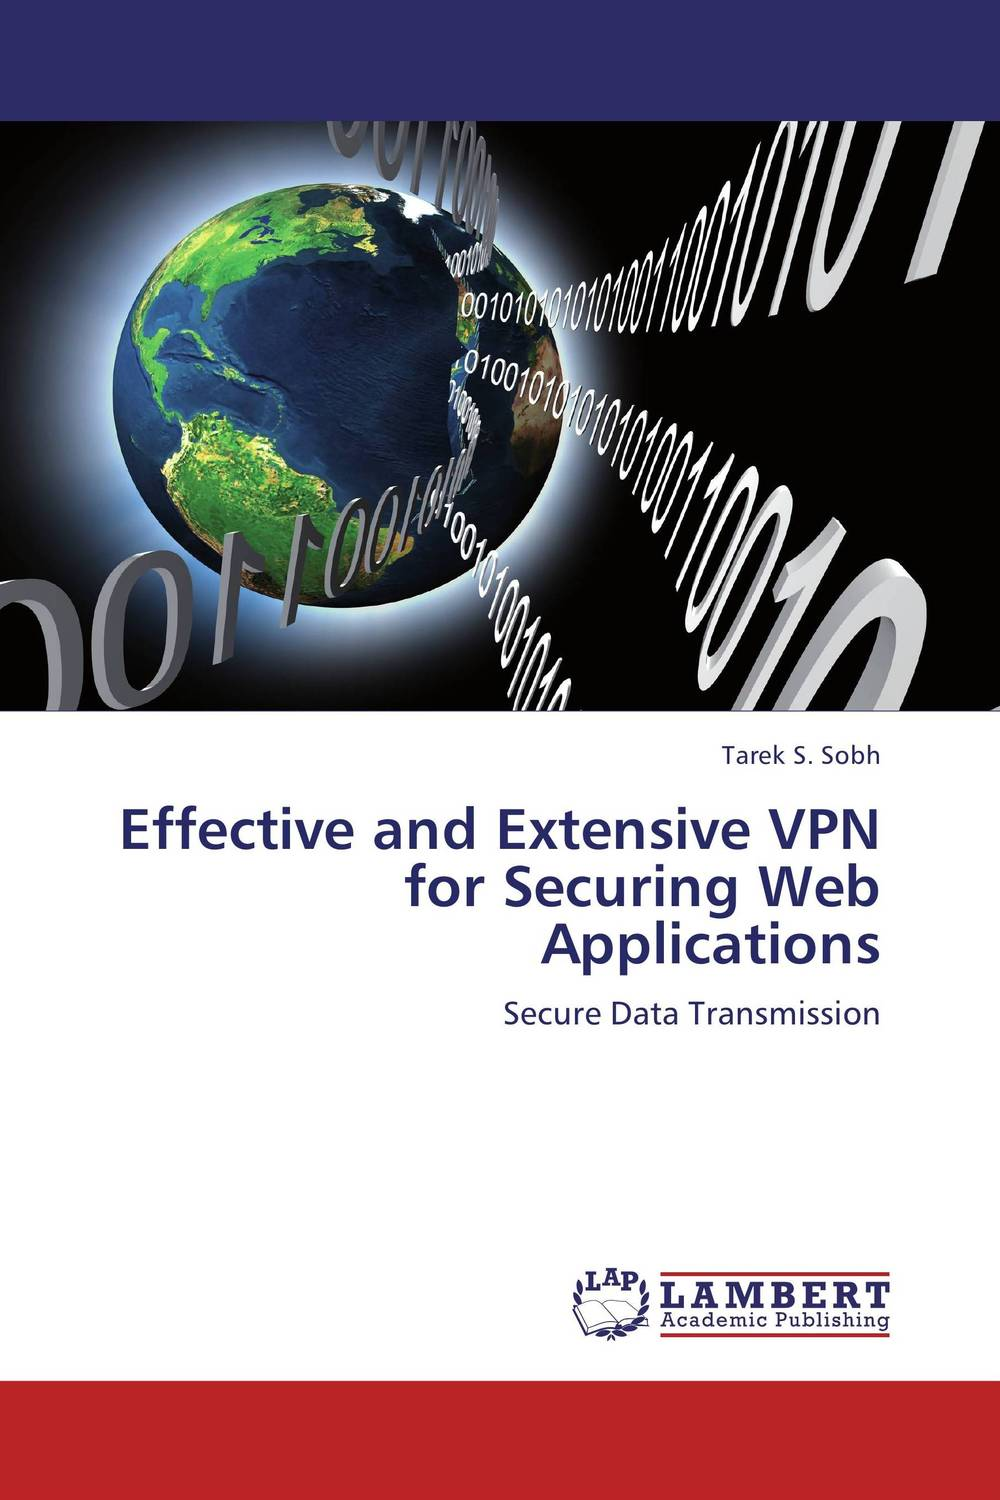 Effective and Extensive VPN for Securing Web Applications belousov a security features of banknotes and other documents methods of authentication manual денежные билеты бланки ценных бумаг и документов